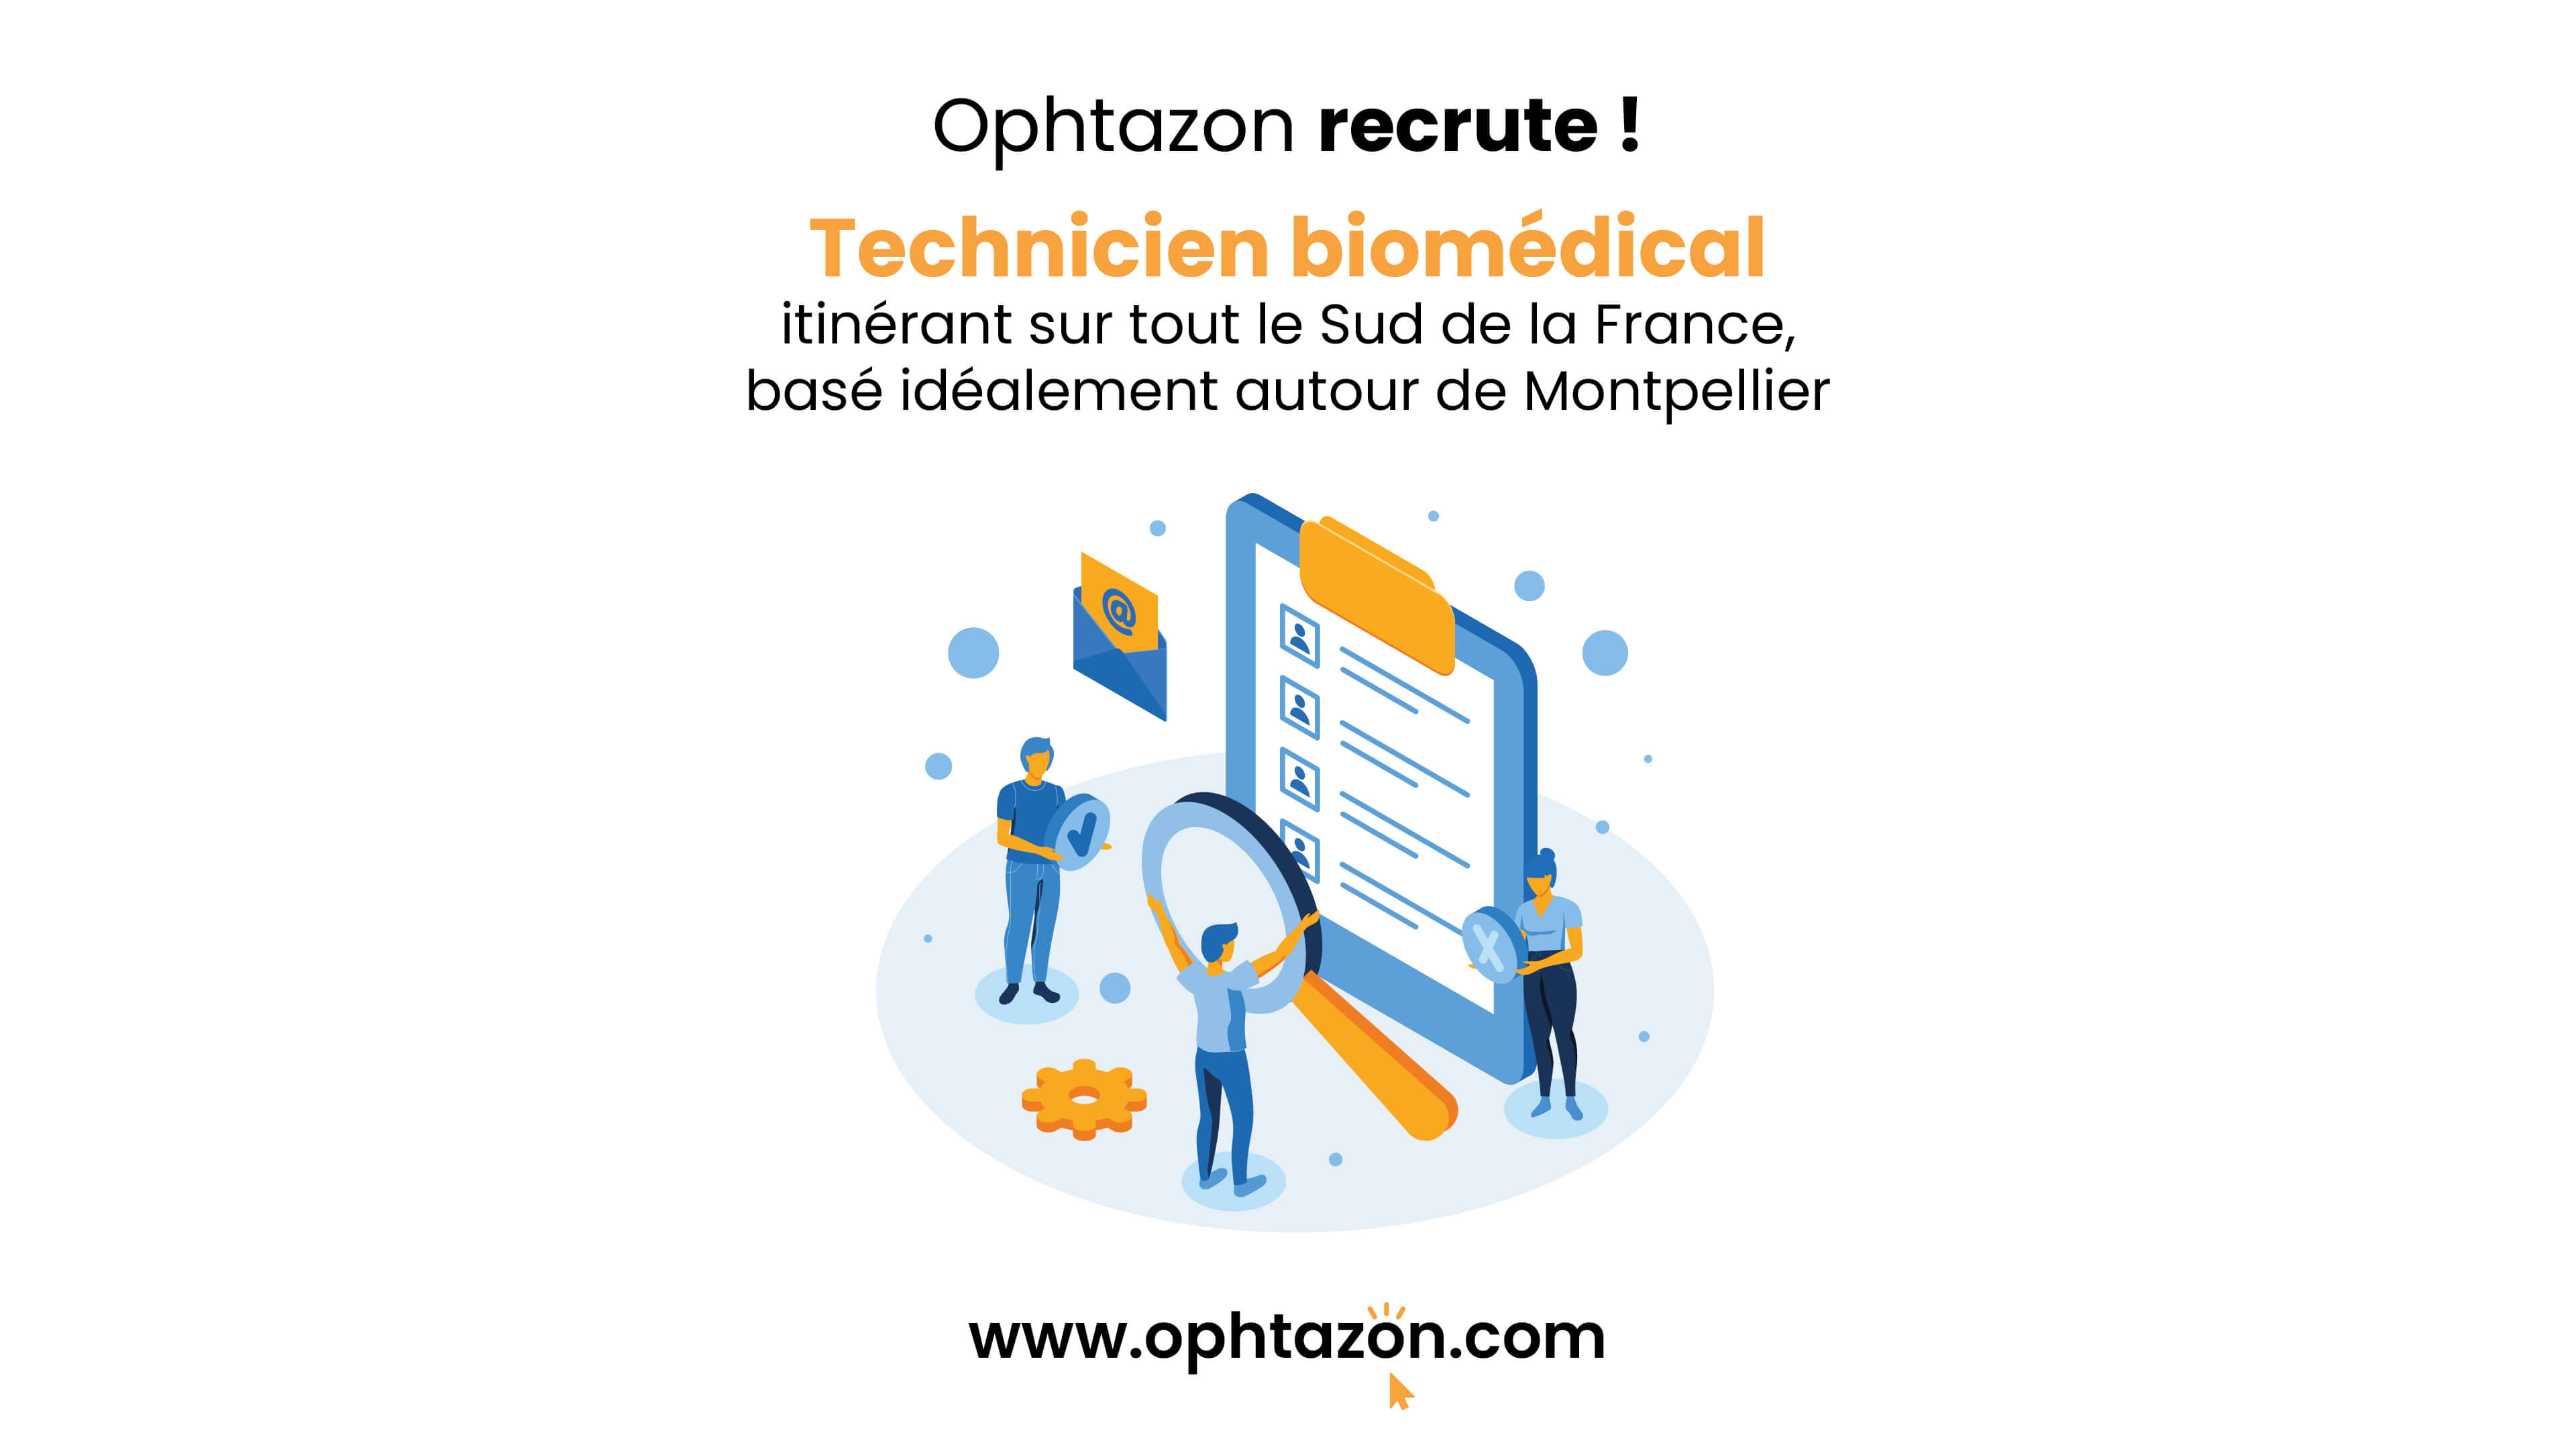 Ophtazon recrute !